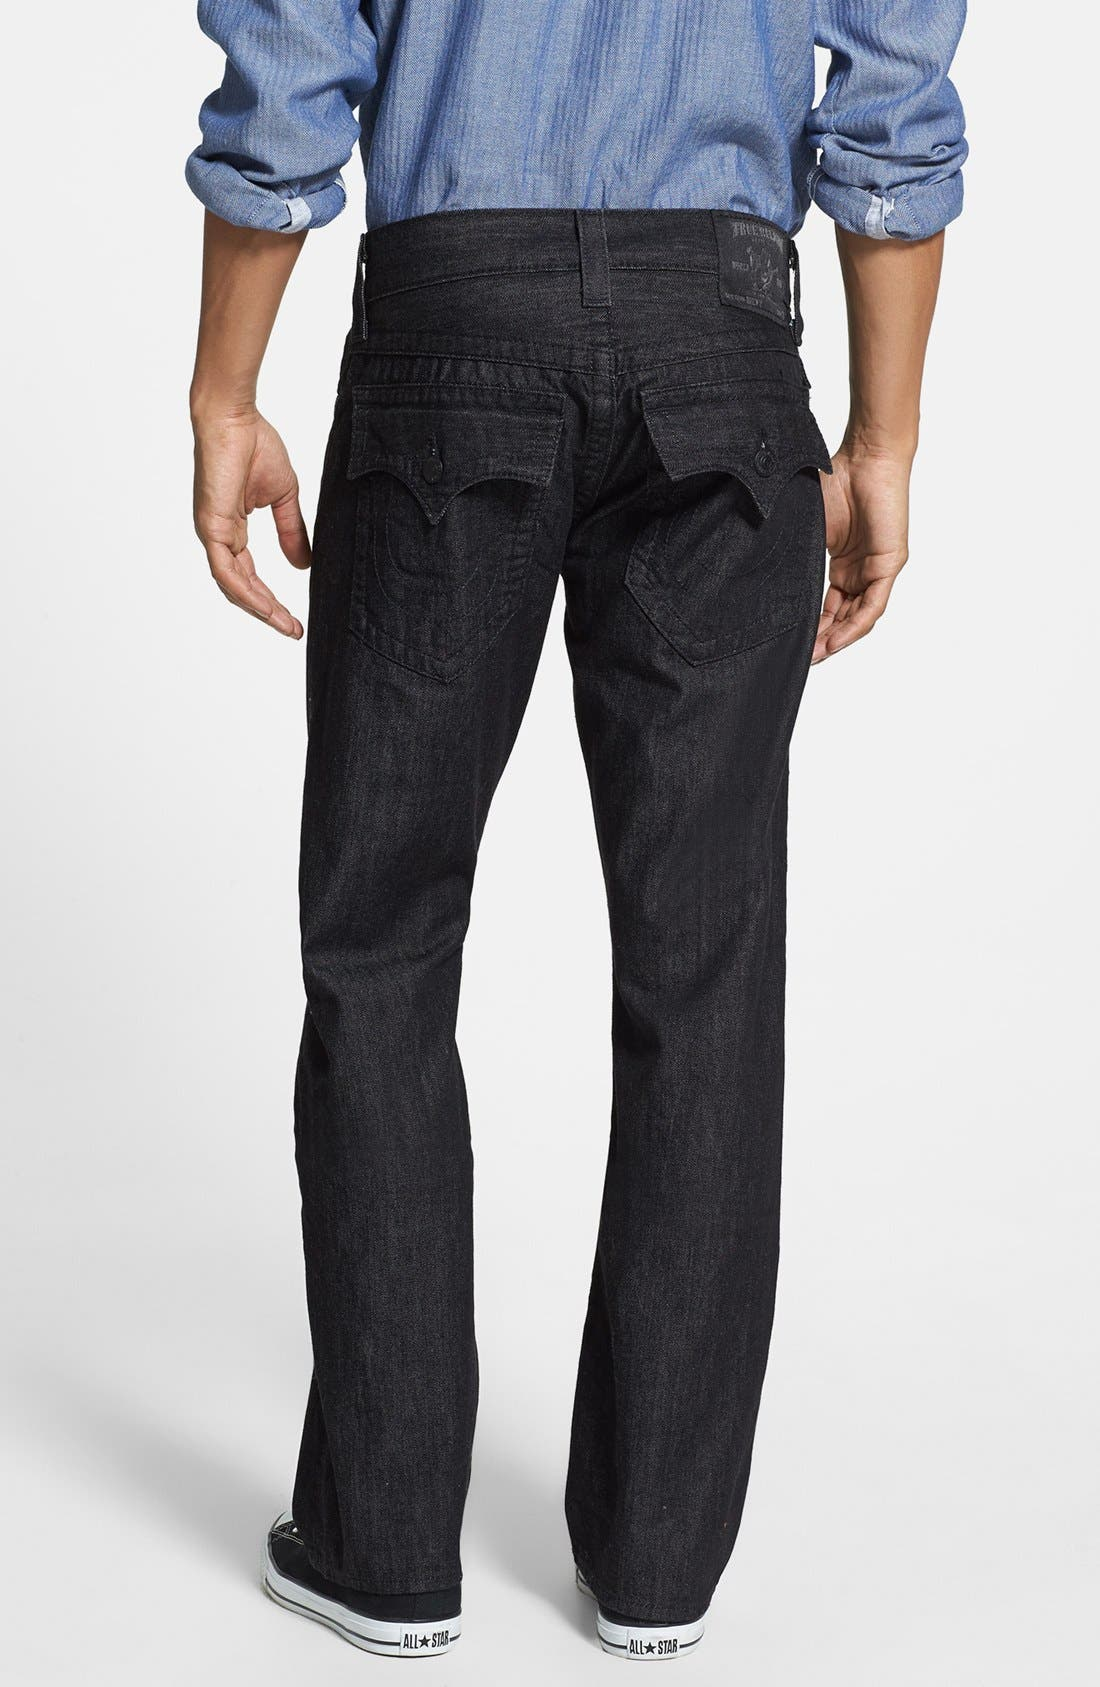 'Ricky' Relaxed Fit Jeans,                             Main thumbnail 1, color,                             001